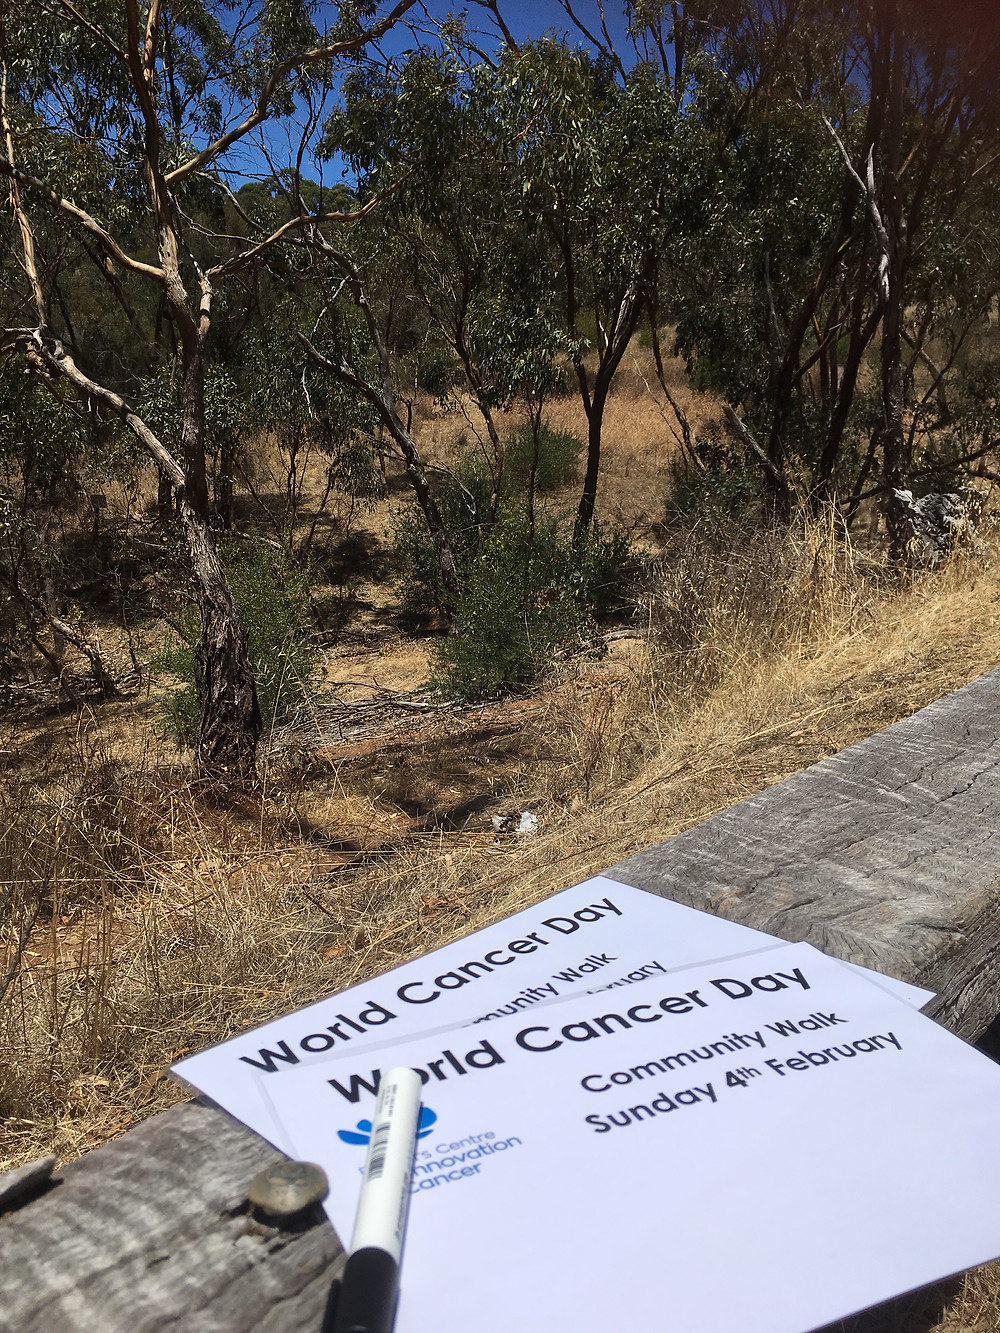 Bushwalk to recognise World Cancer Day and acknowledge that together we can make cancer a thing of the past